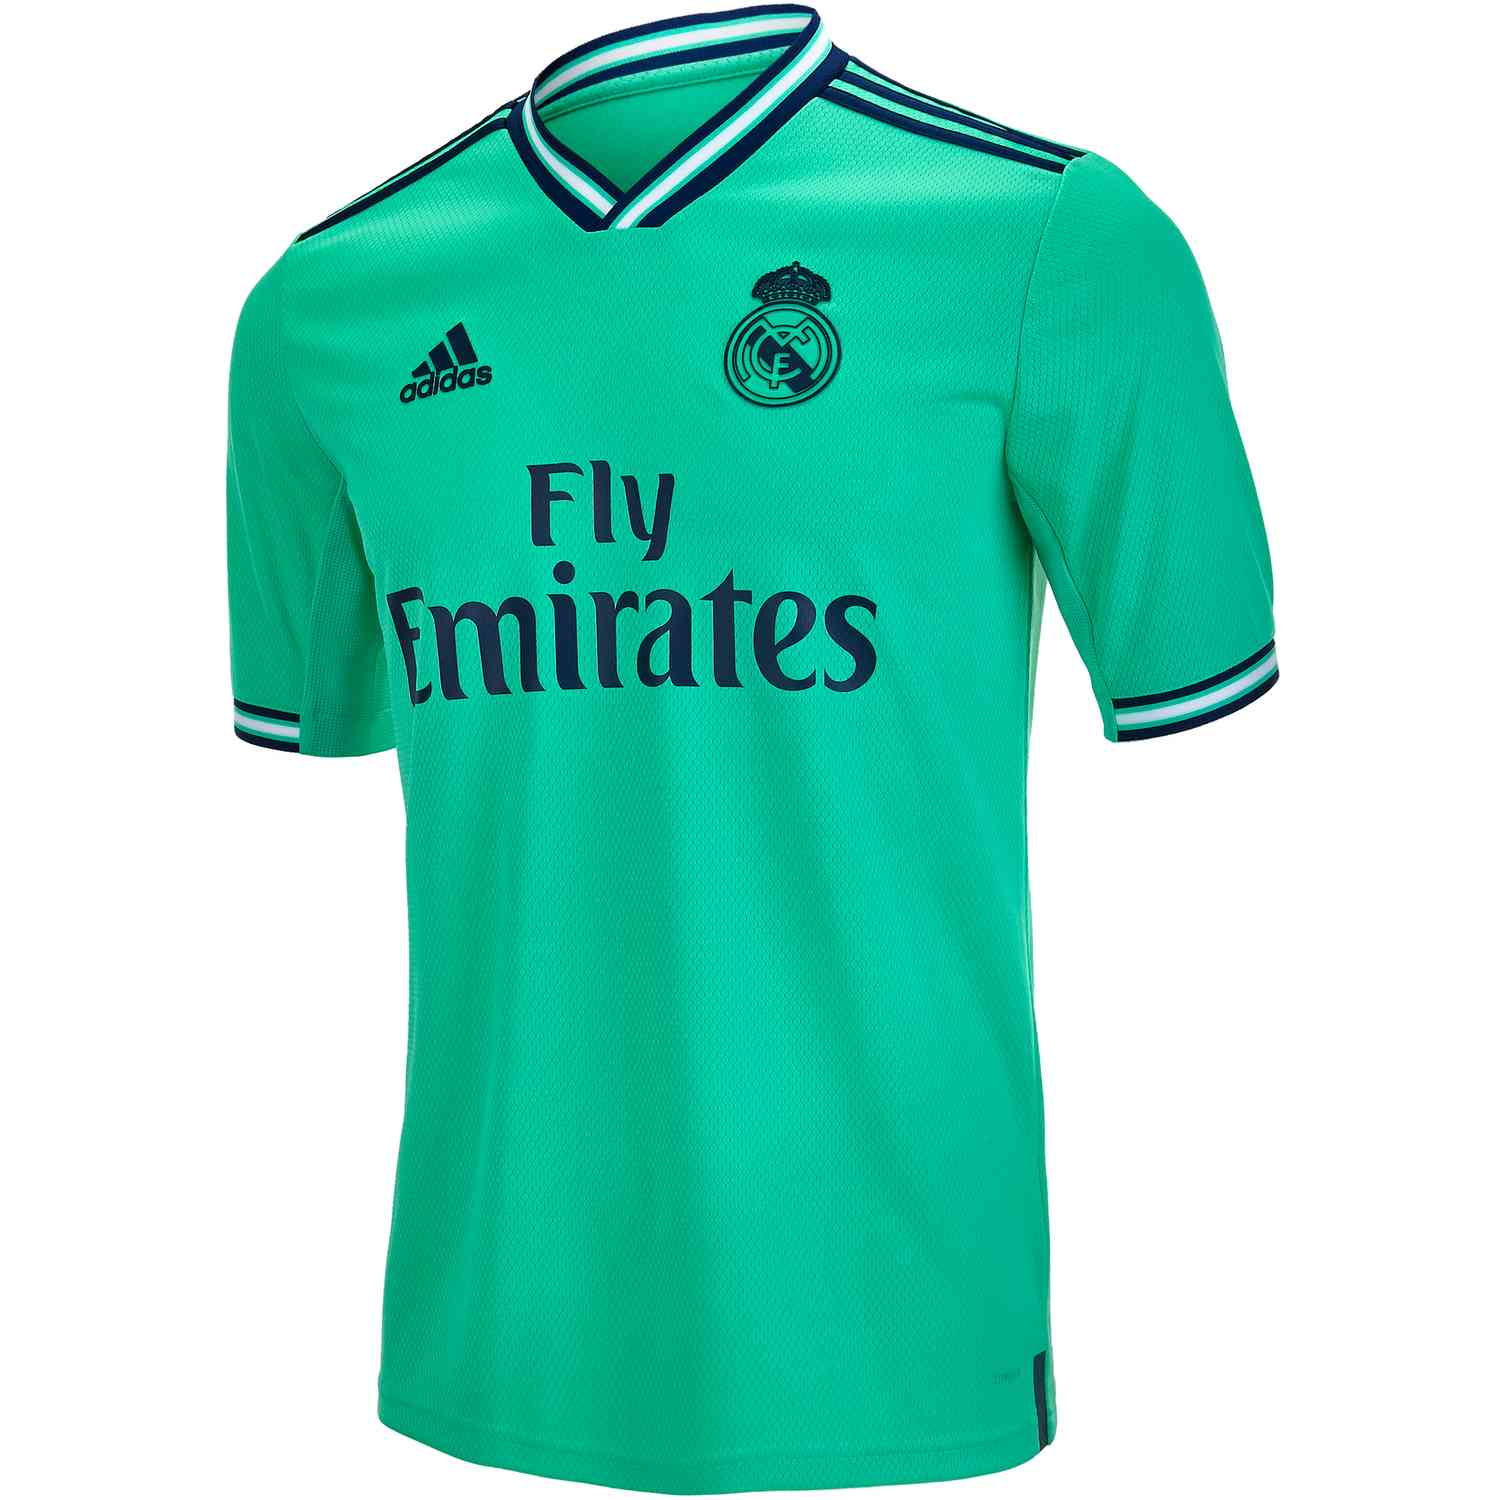 new arrivals 75275 dfca5 2019/20 Kids adidas Real Madrid 3rd Jersey